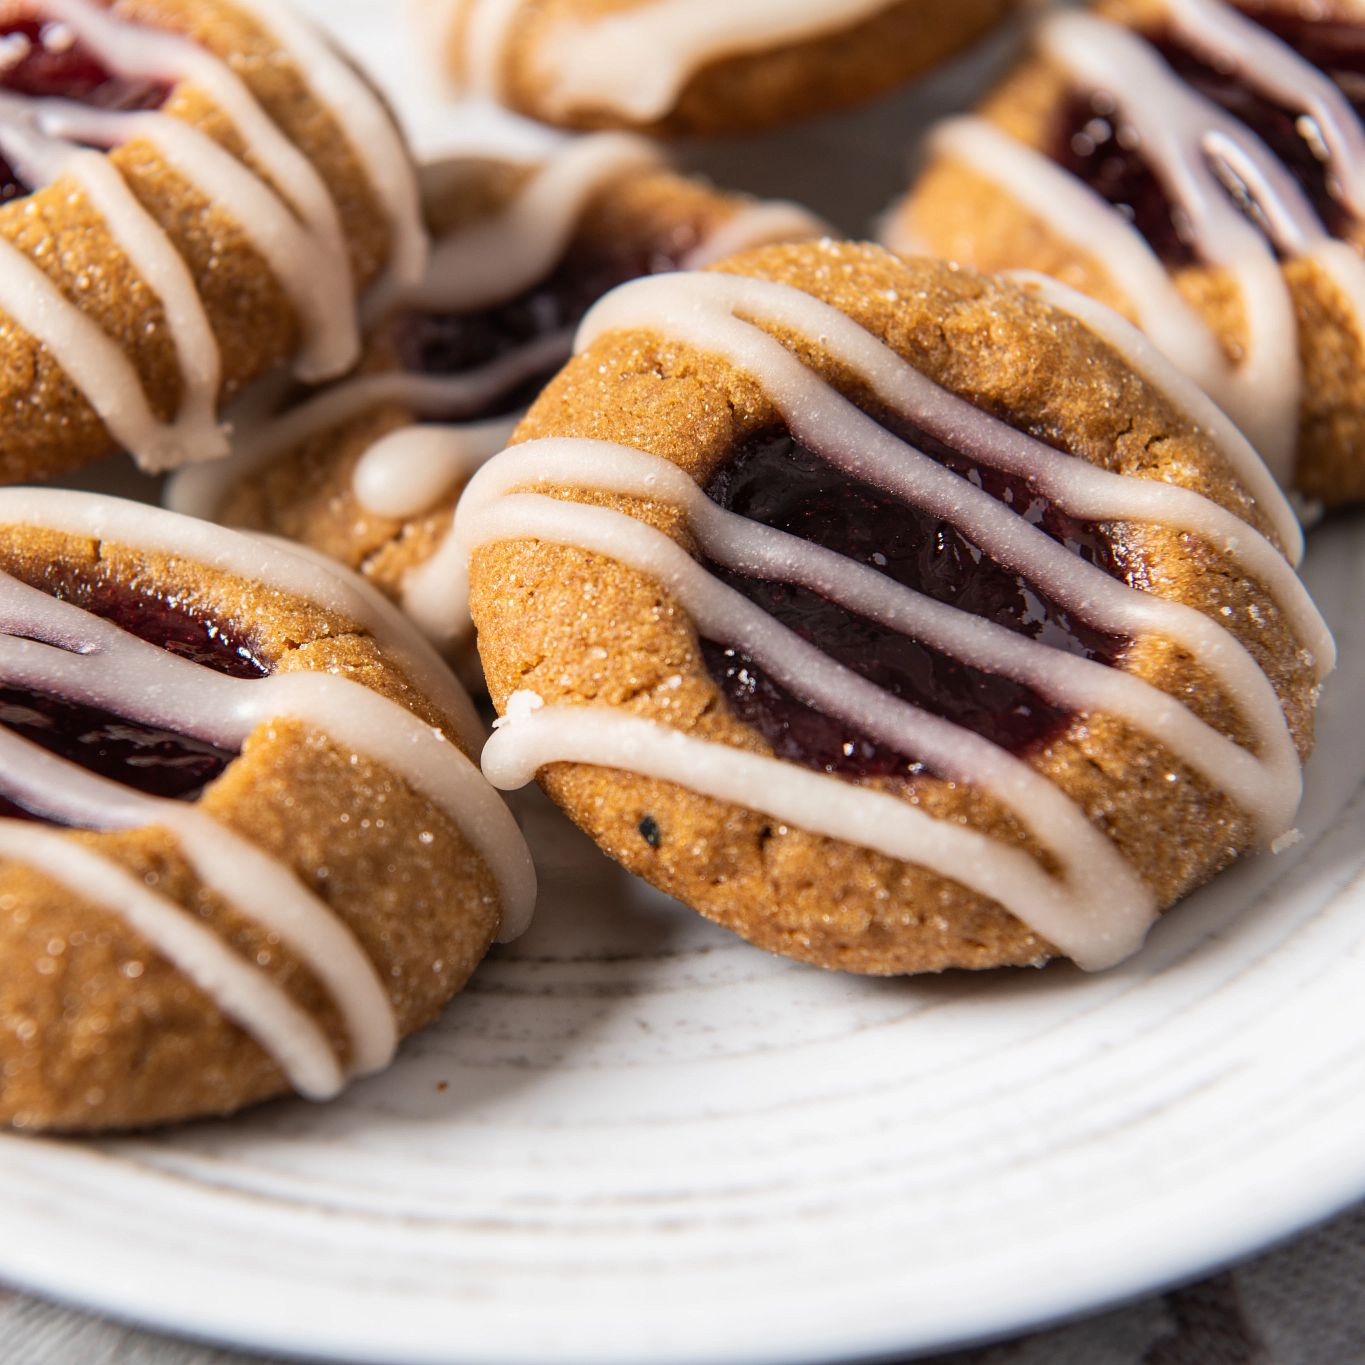 Cherry Almond Gingerbread Thumbprint Cookies with Vanilla Drizzle